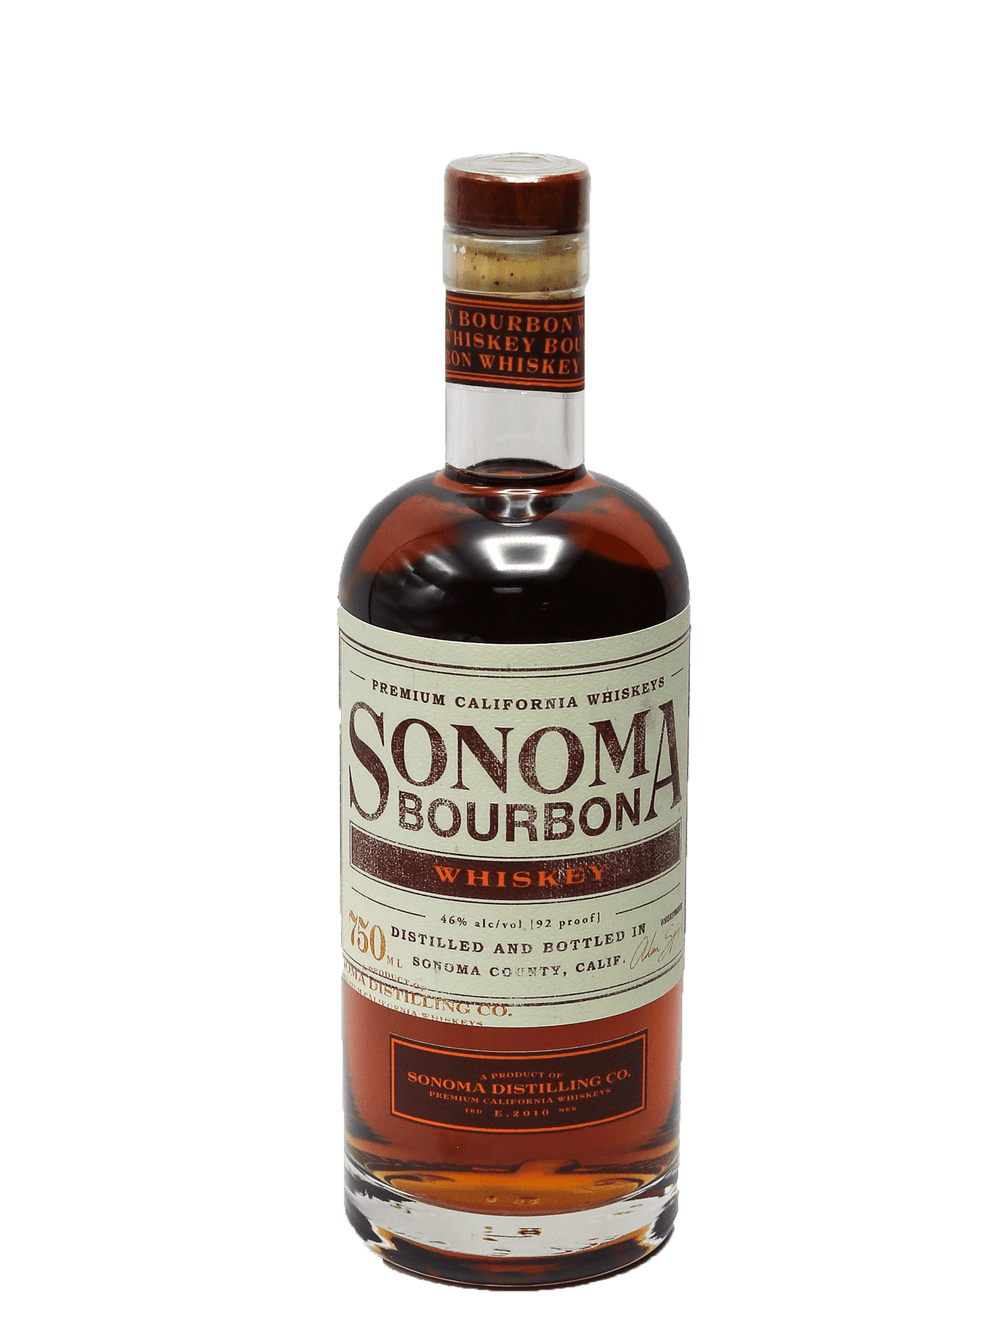 Sonoma Distilling Co. Bourbon